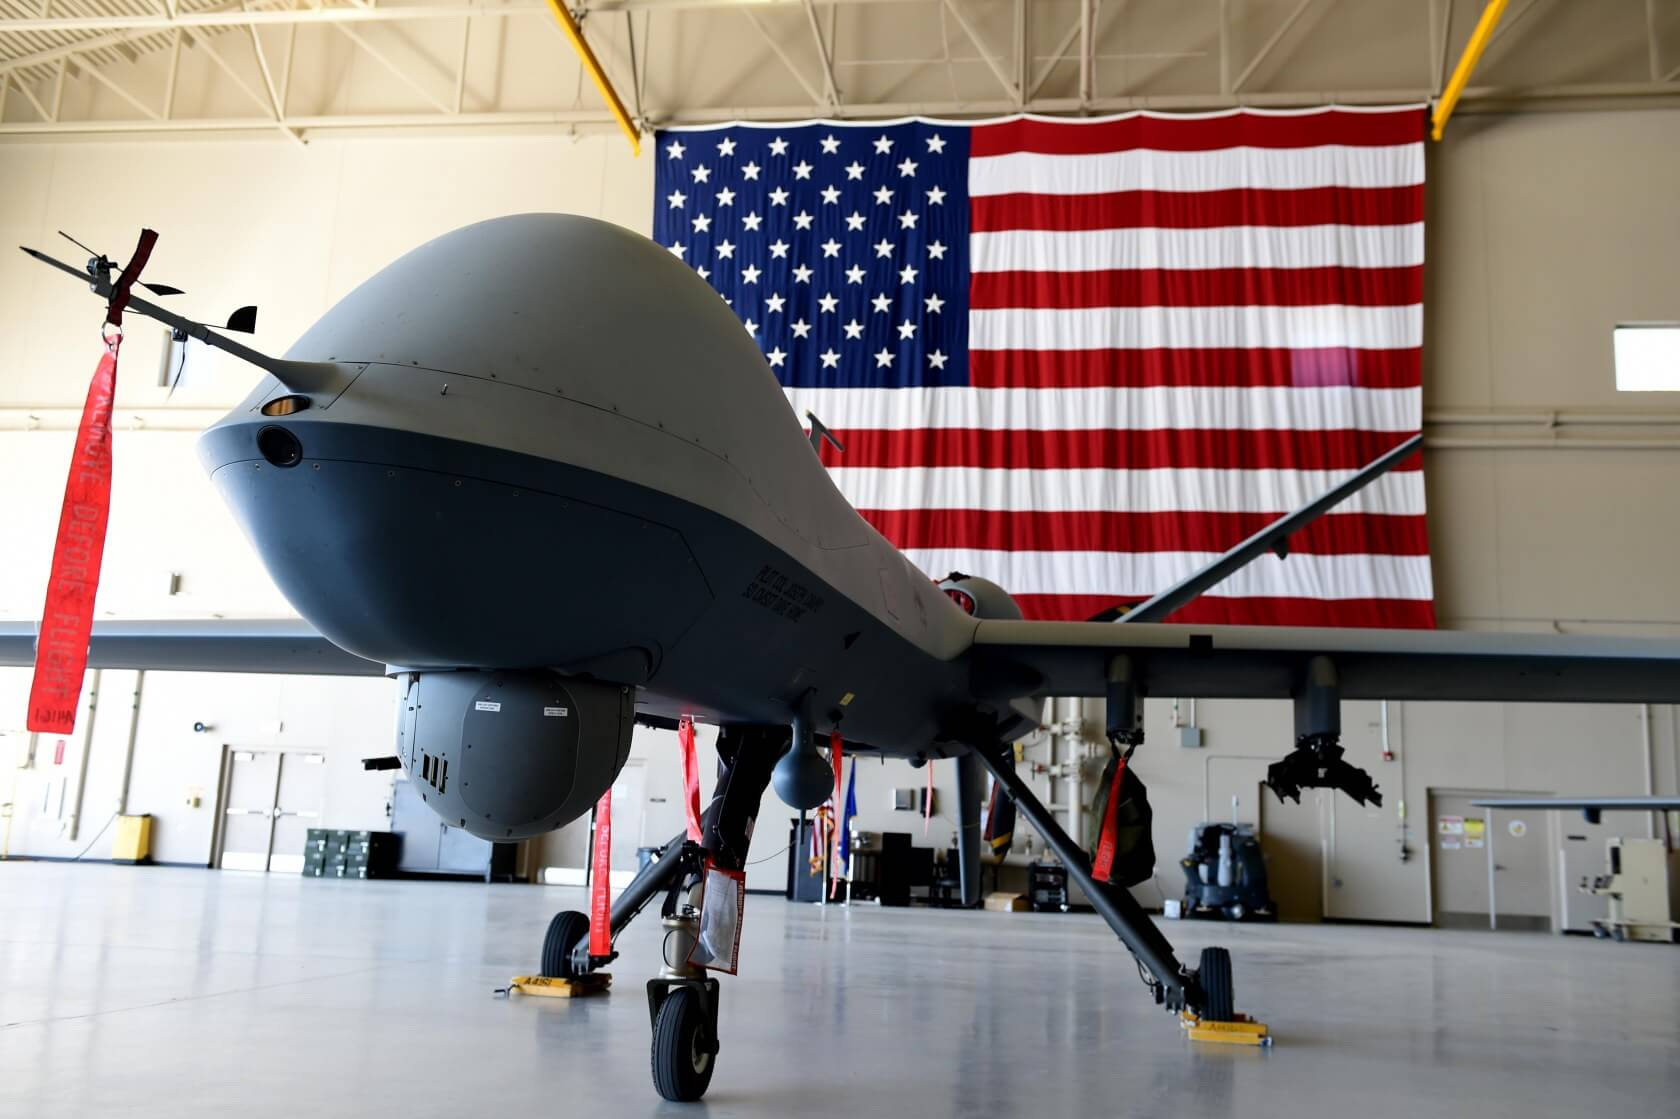 Low-paid workers unknowingly helped Google build controversial AI for military drones